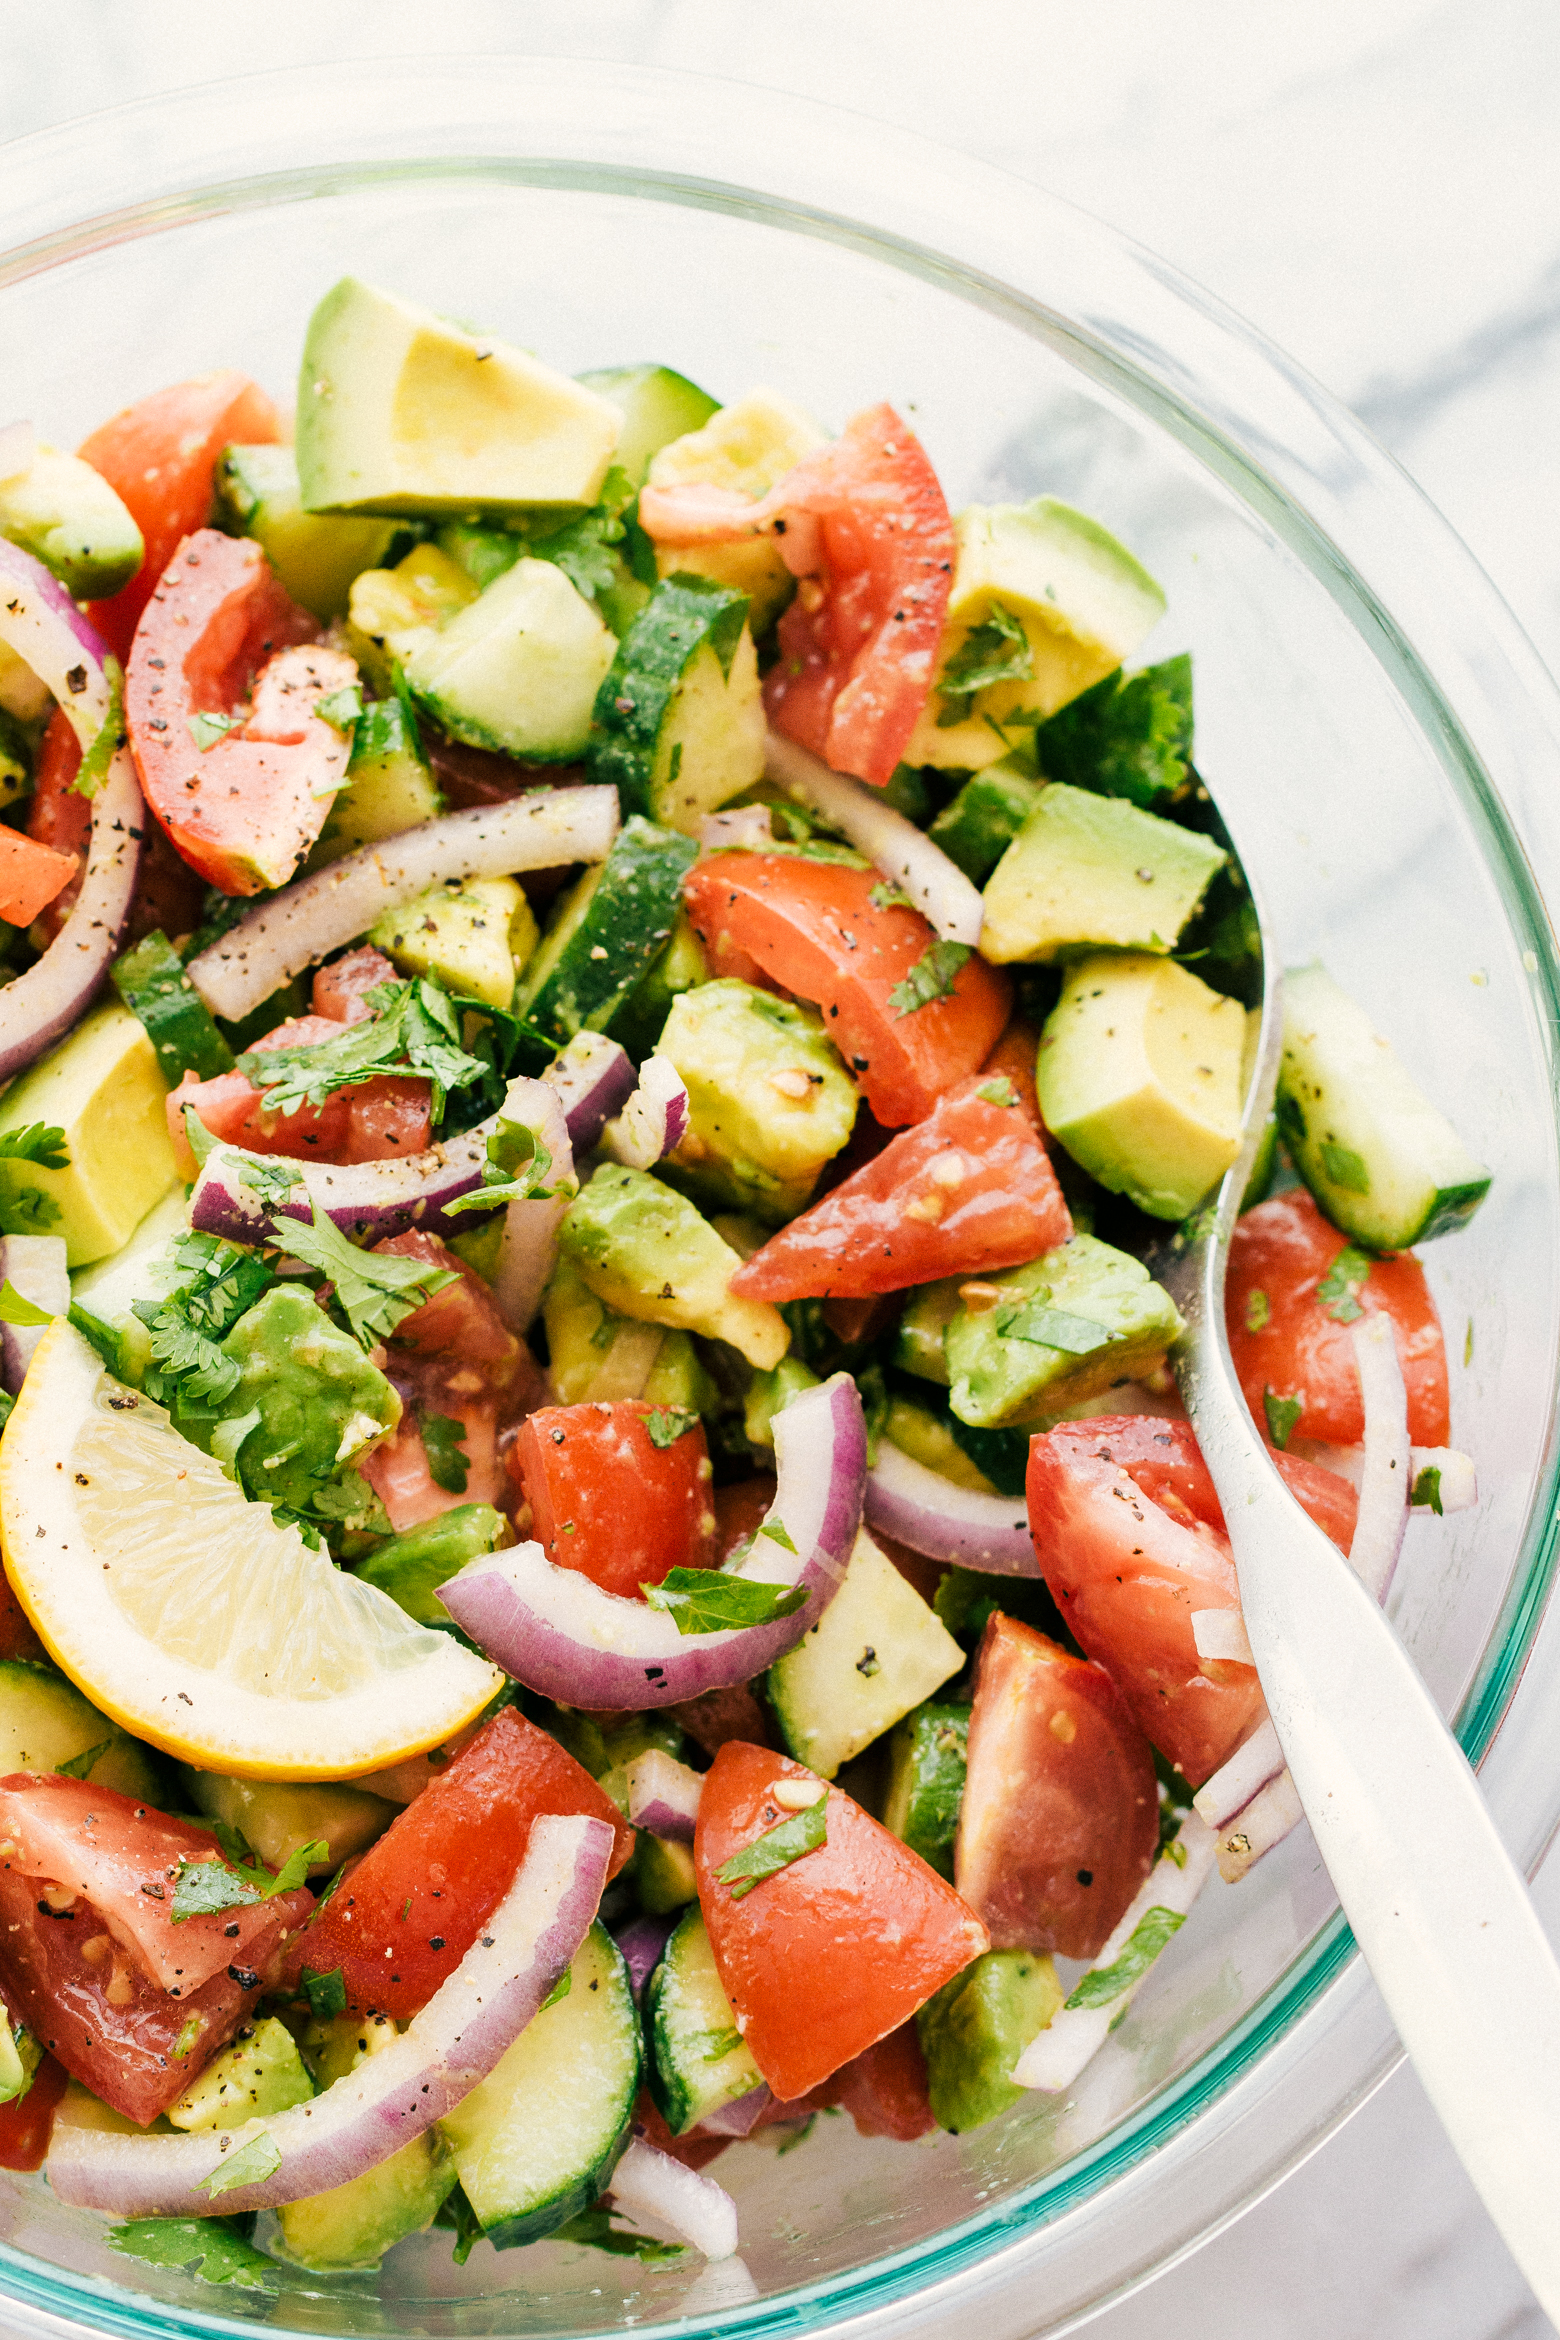 avocado tomato cucumber salad in a bowl garnished with sliced lemons ready to serve-simple and delicious recipe